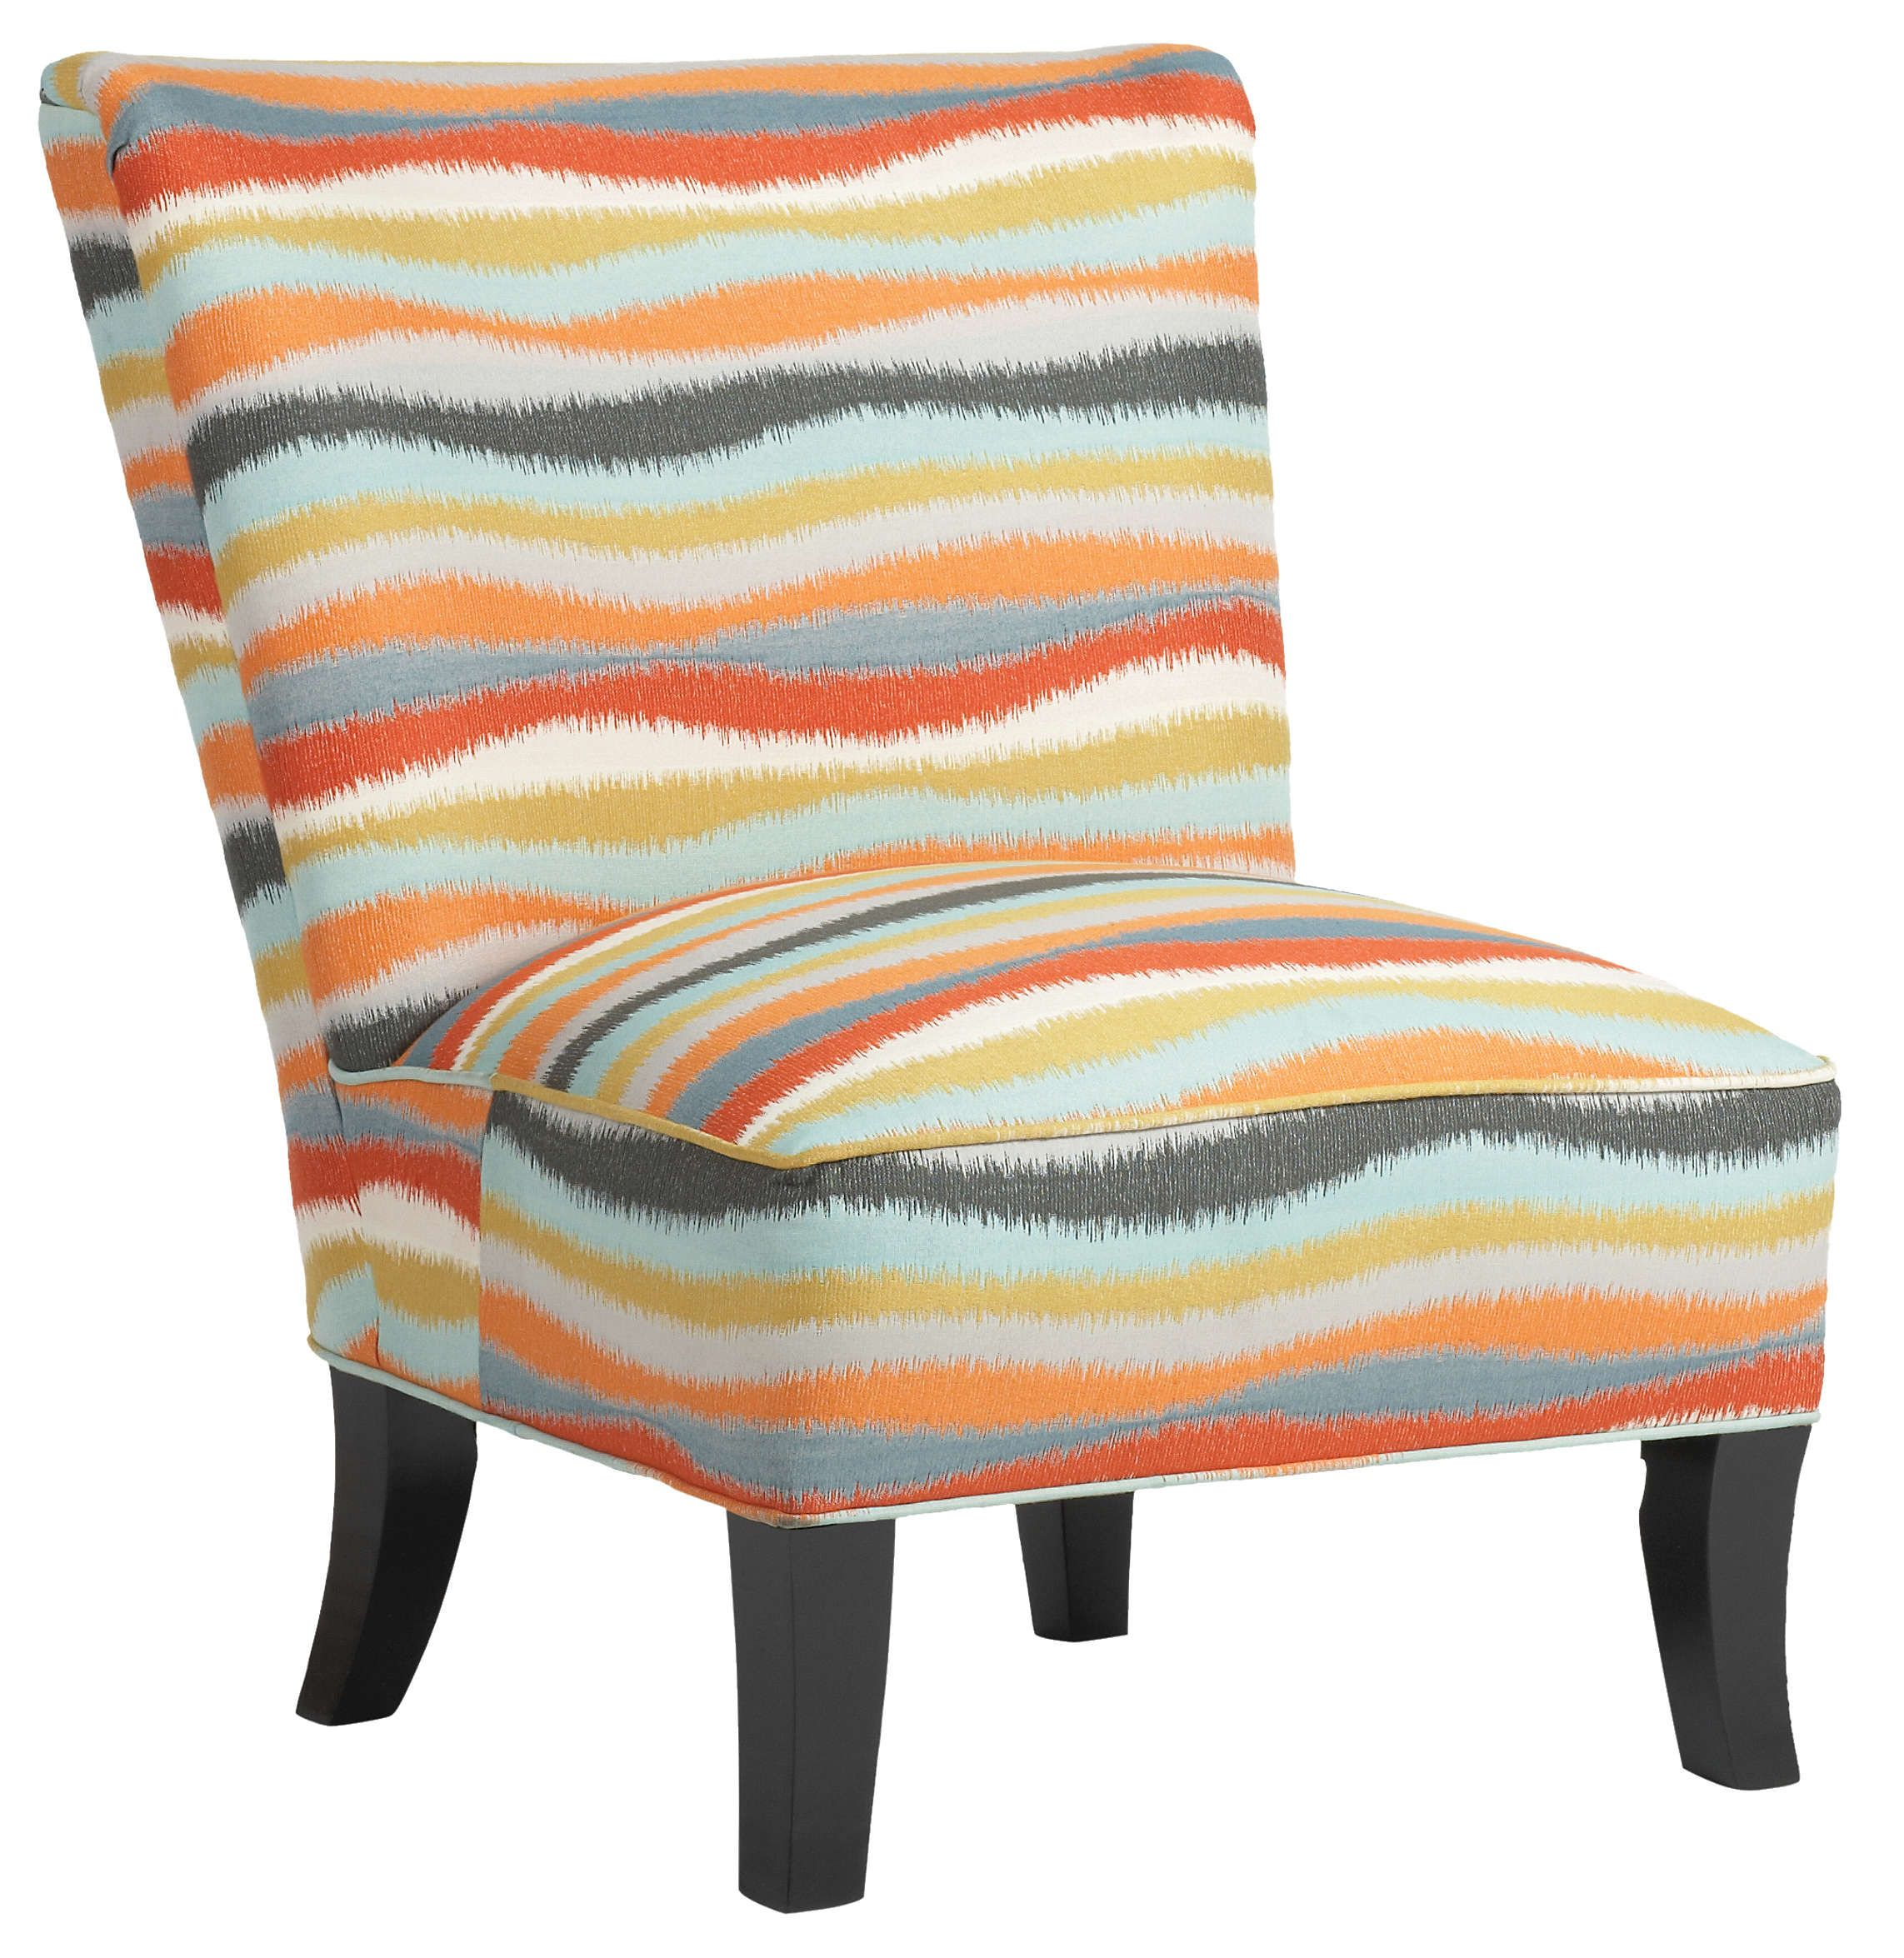 Cindy Crawford designed the Venus armless accent chair with a